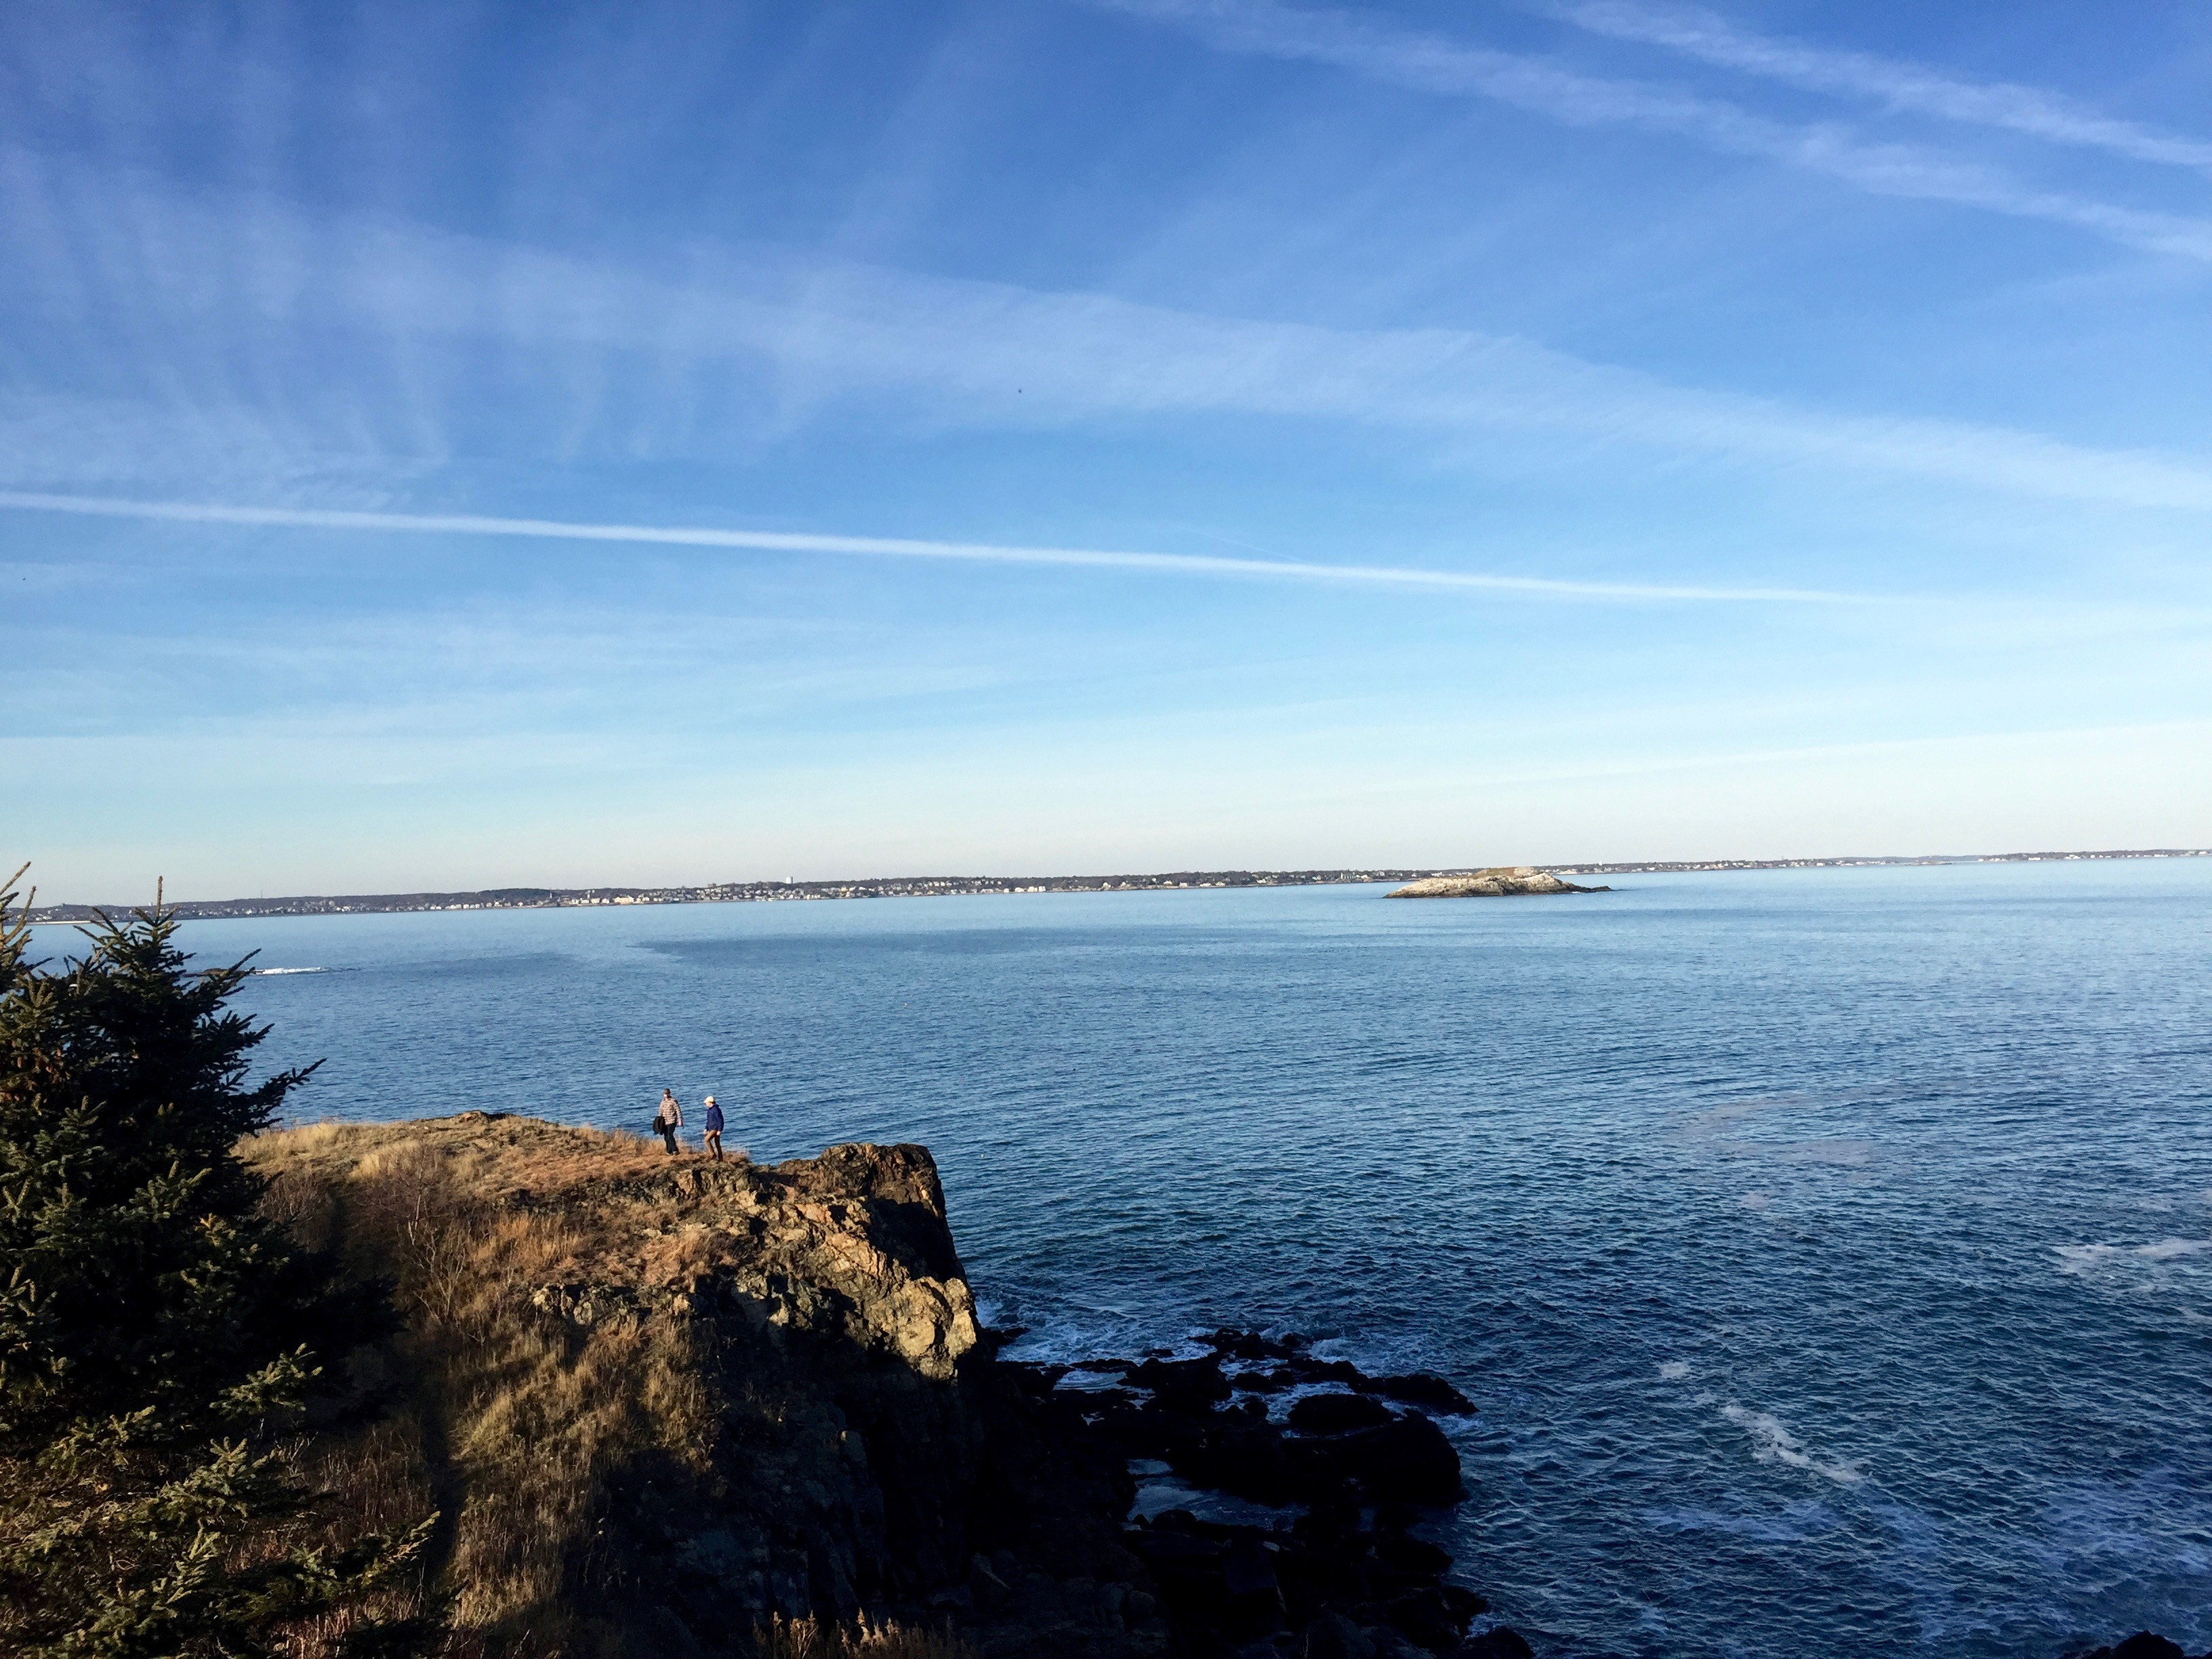 Escaped the noise of Boston and went to Nahant for the afternoon. A sunny East Coast winter day.